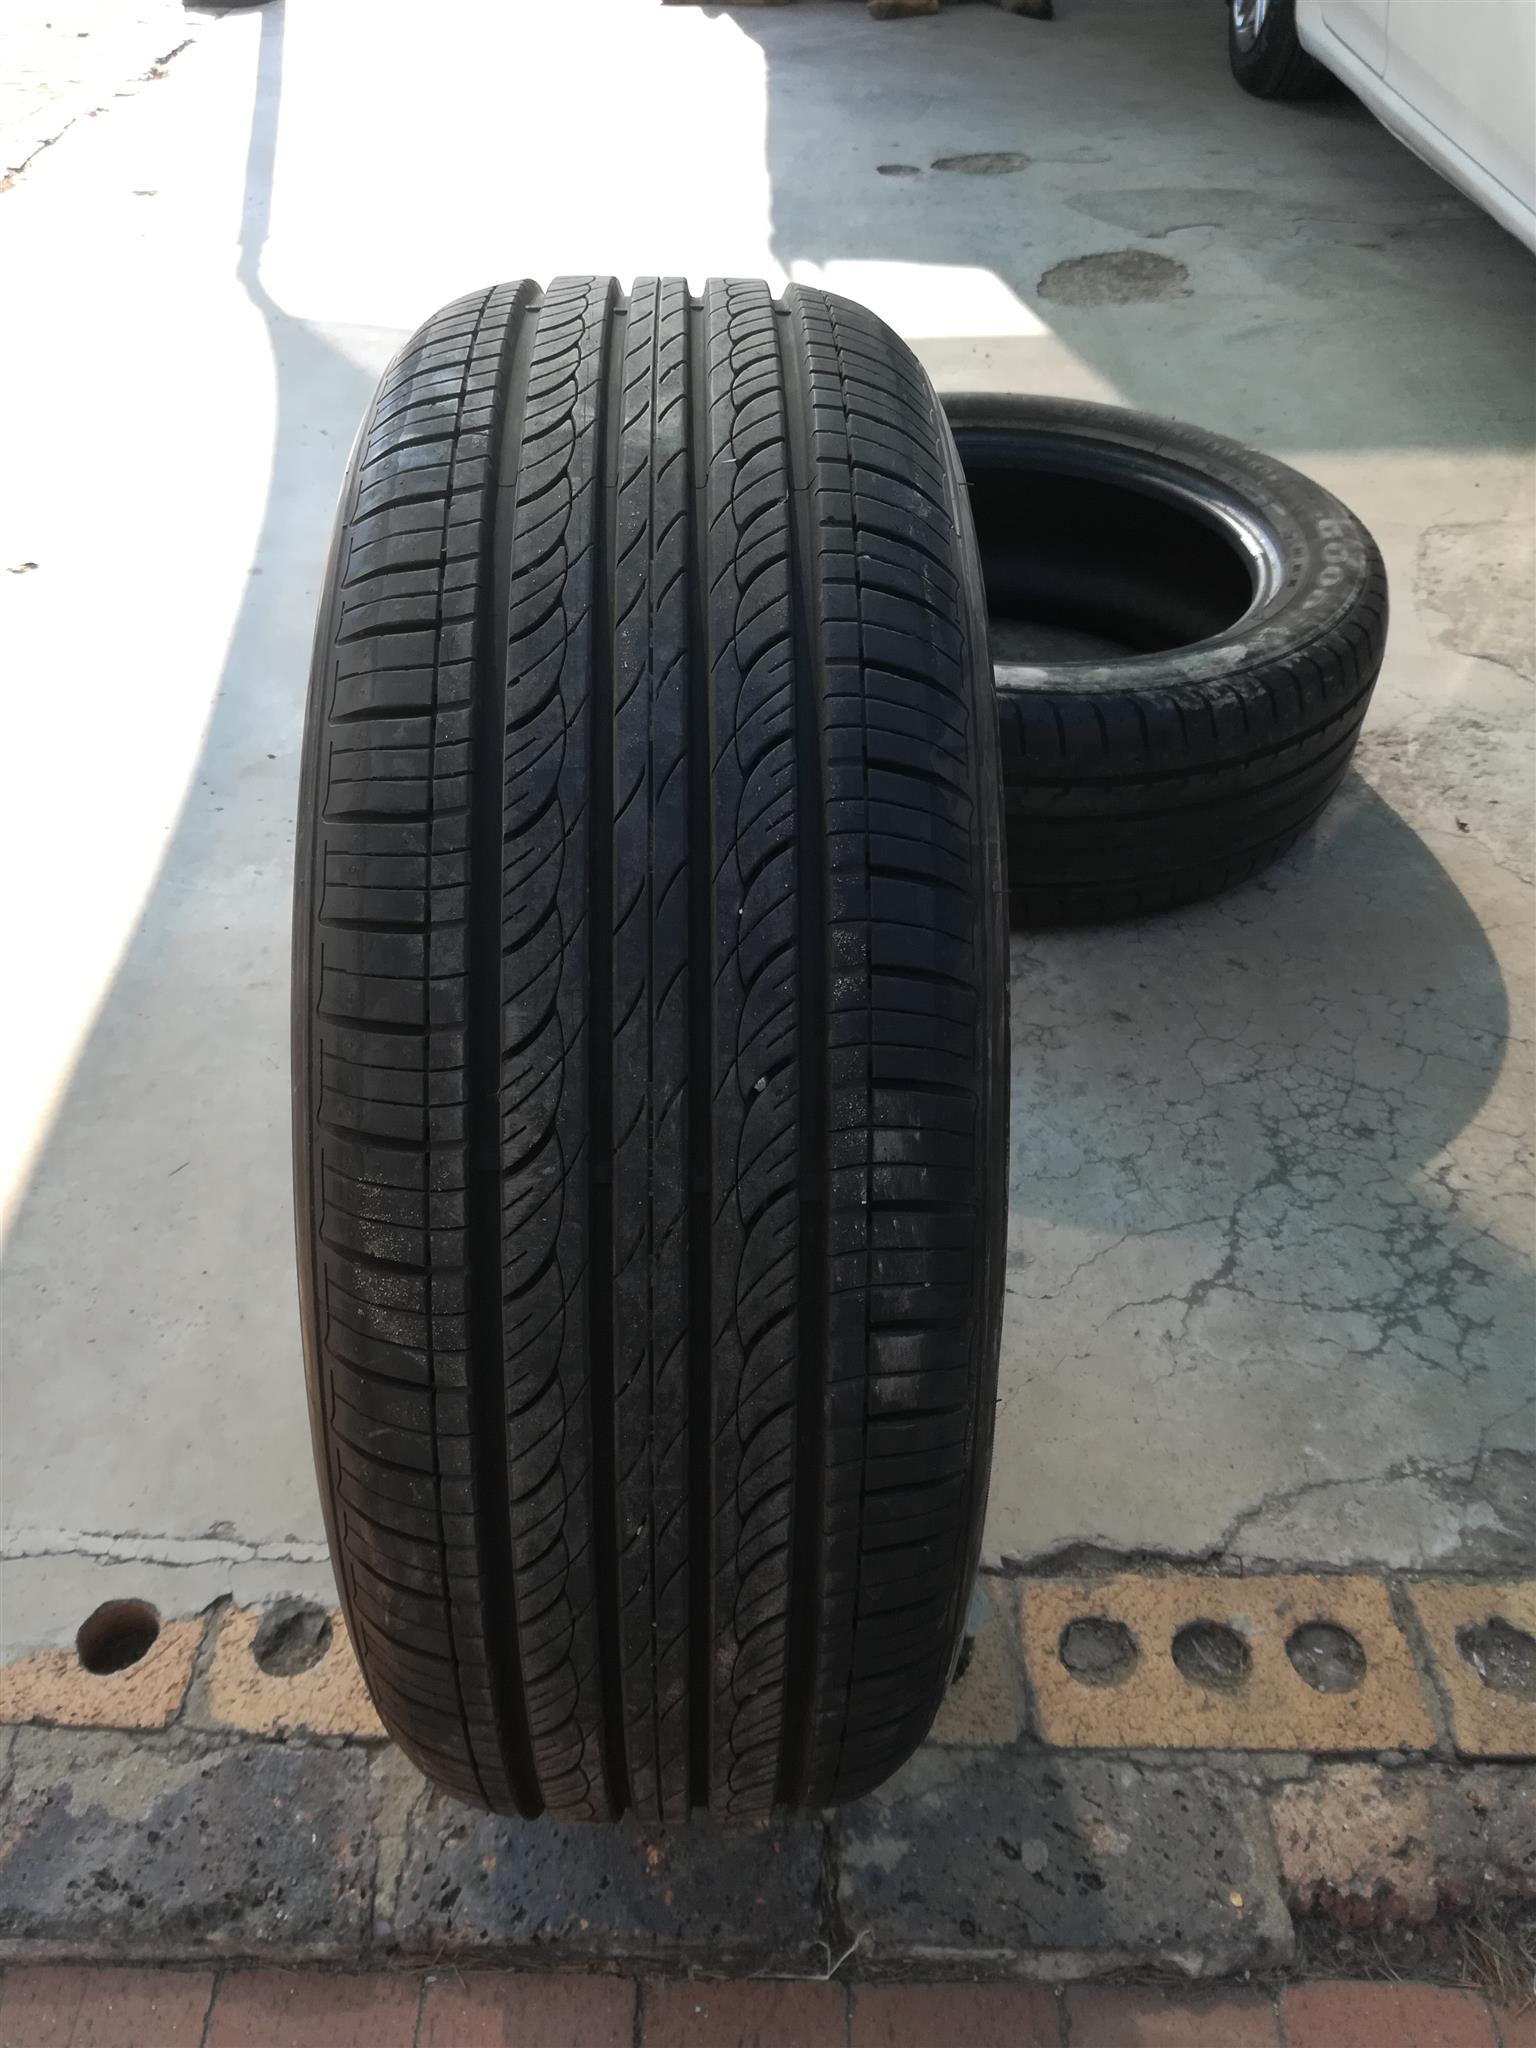 1x 225 /55 /18 Hankook Tyre for sale